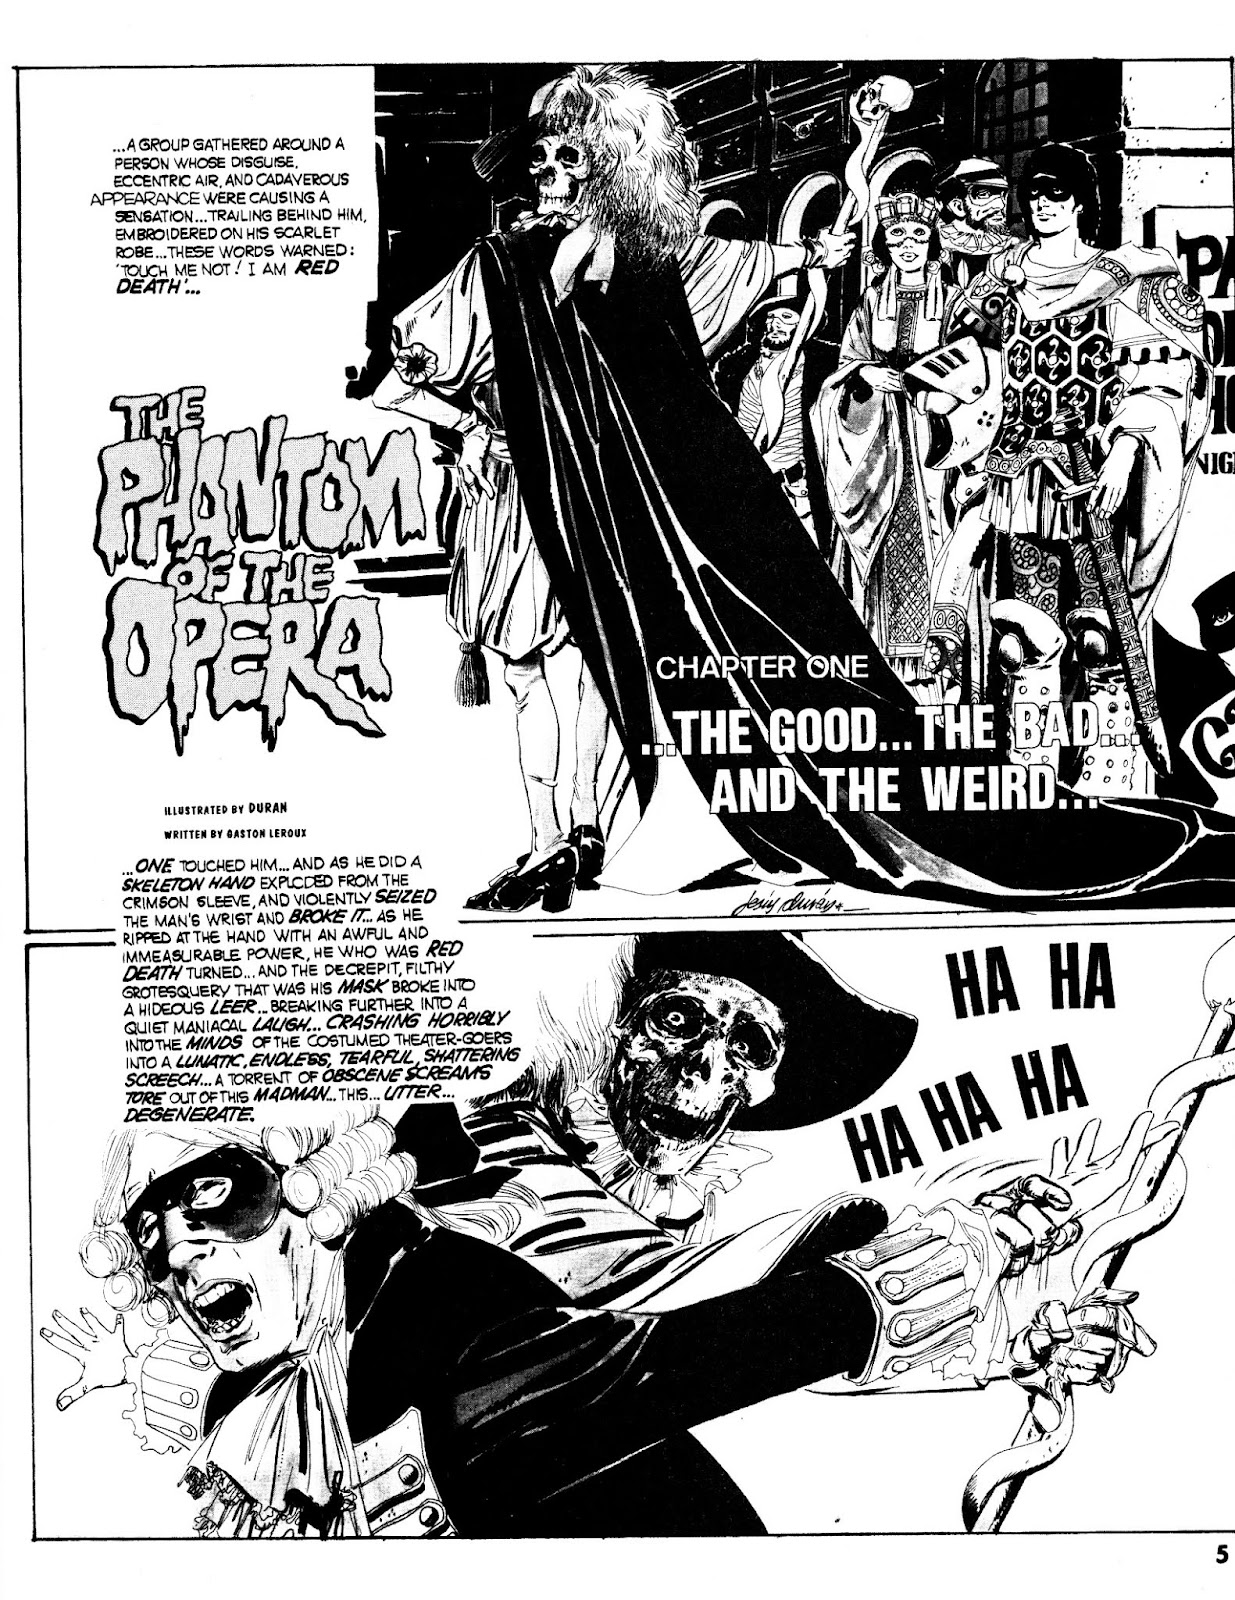 Scream (1973) issue 3 - Page 5